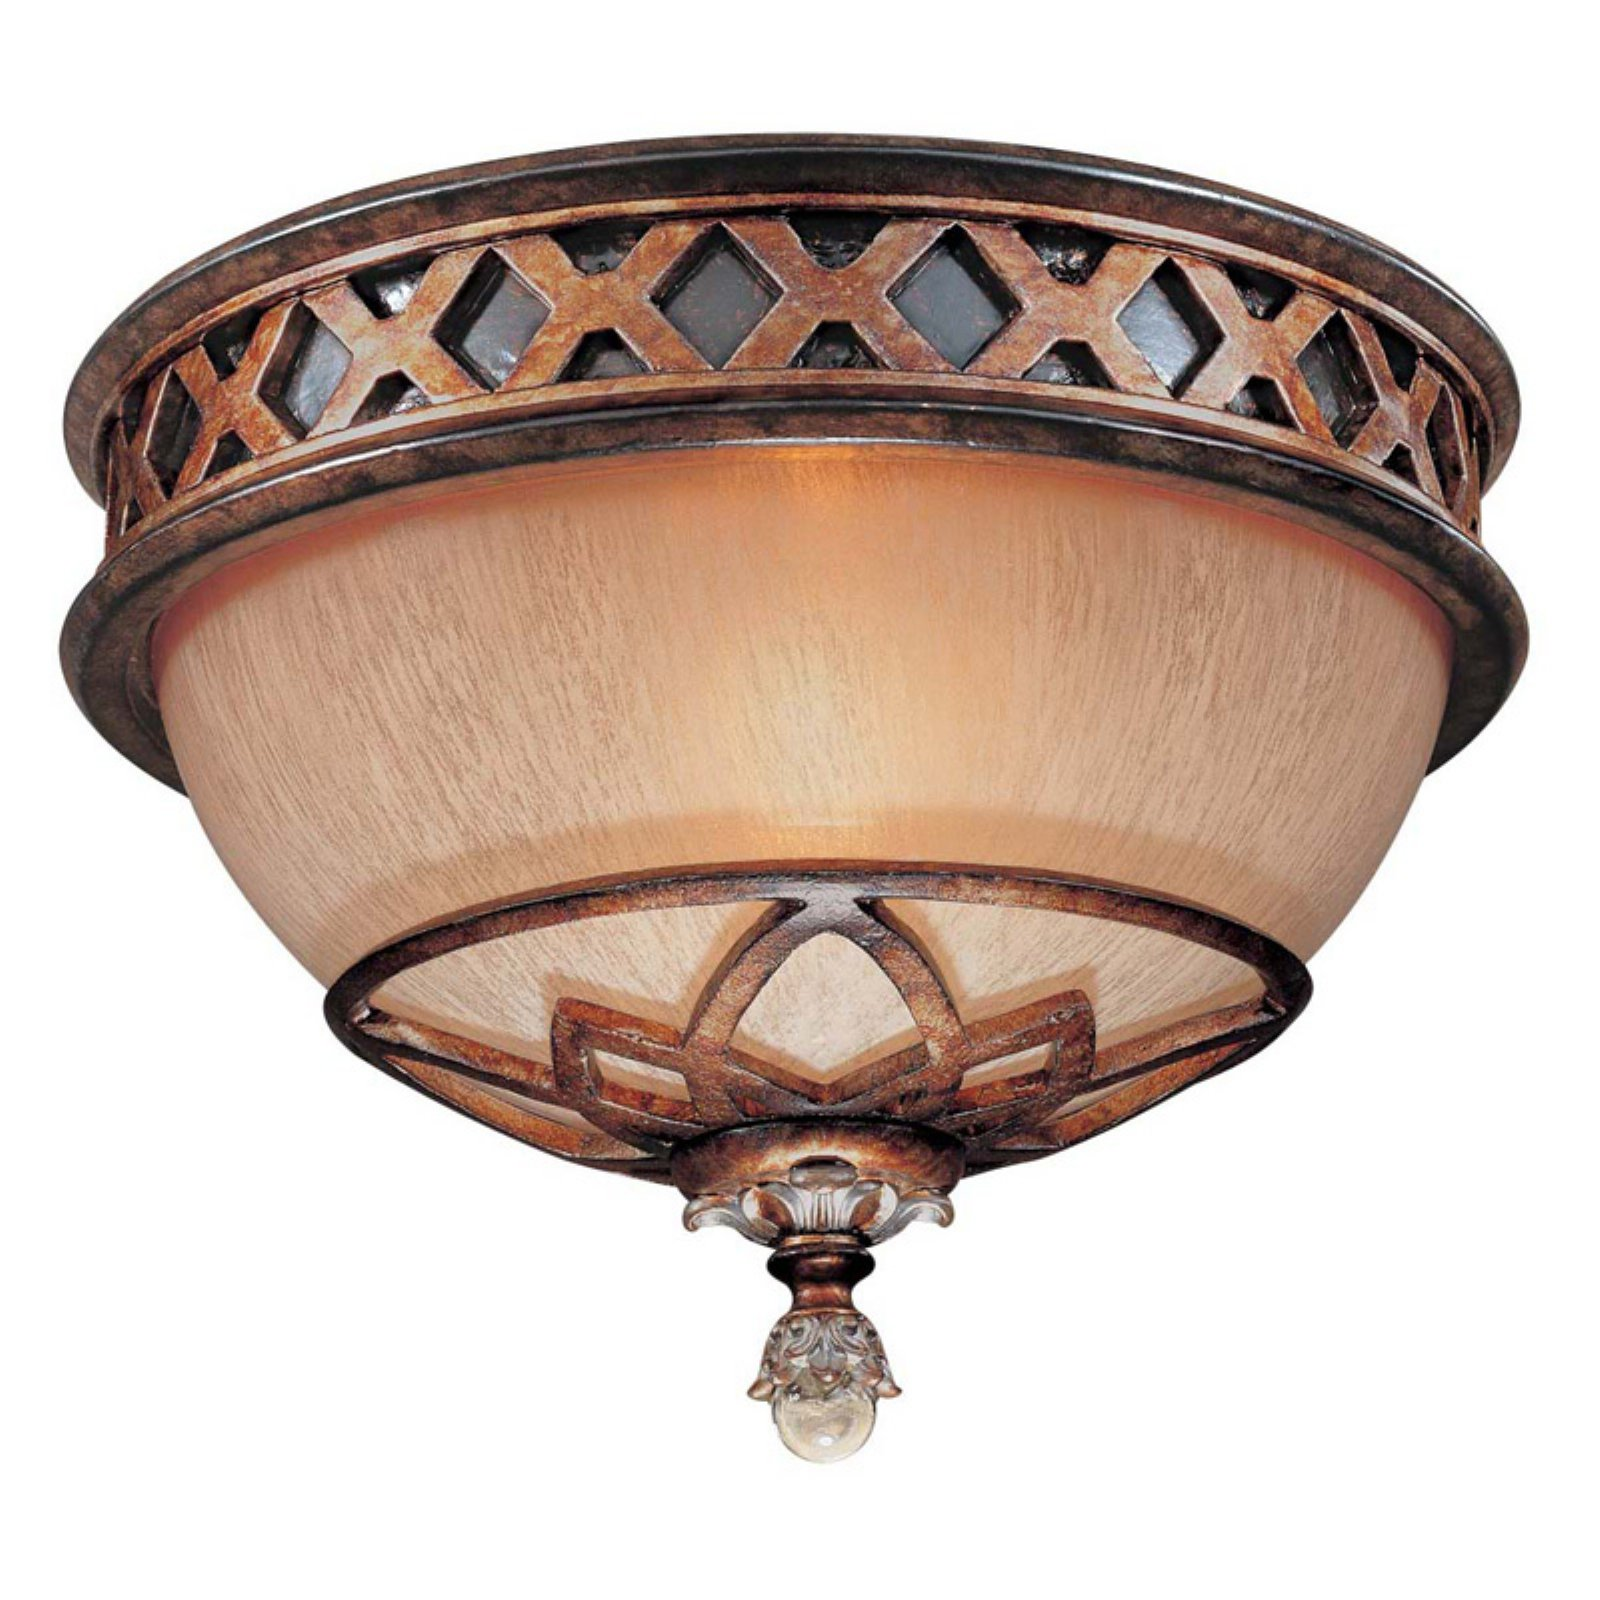 Minka Lavery Aston Court Flush Mount - Aston Court Bronze